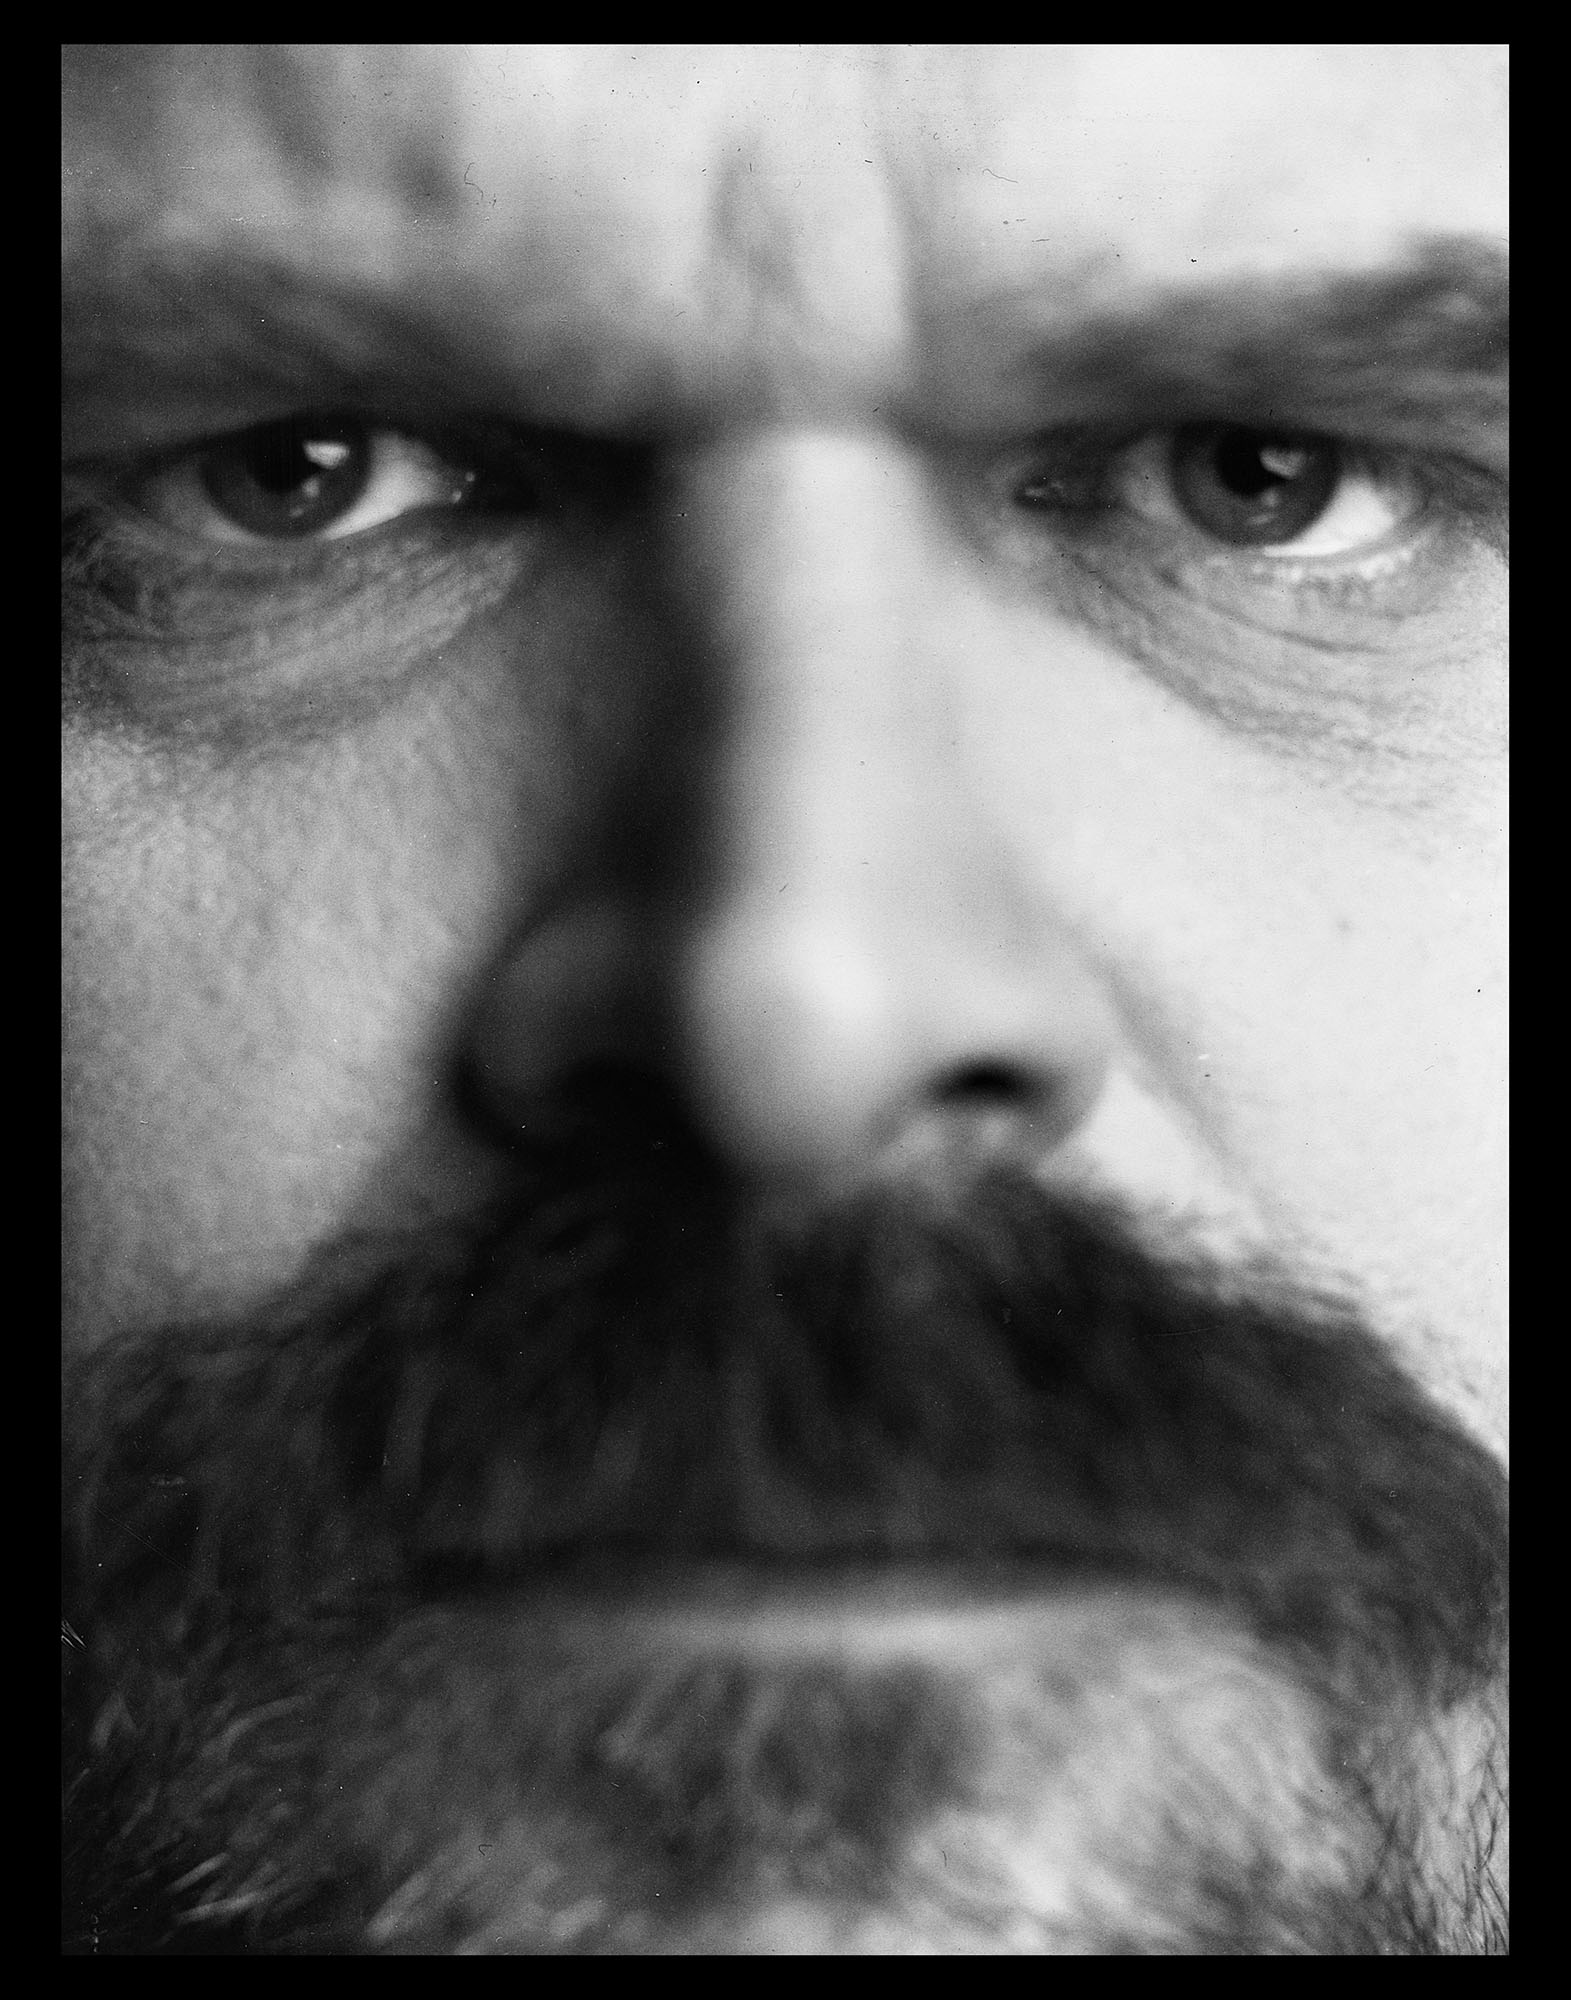 David_Harbour_4x5_Benjo_Arwas_4